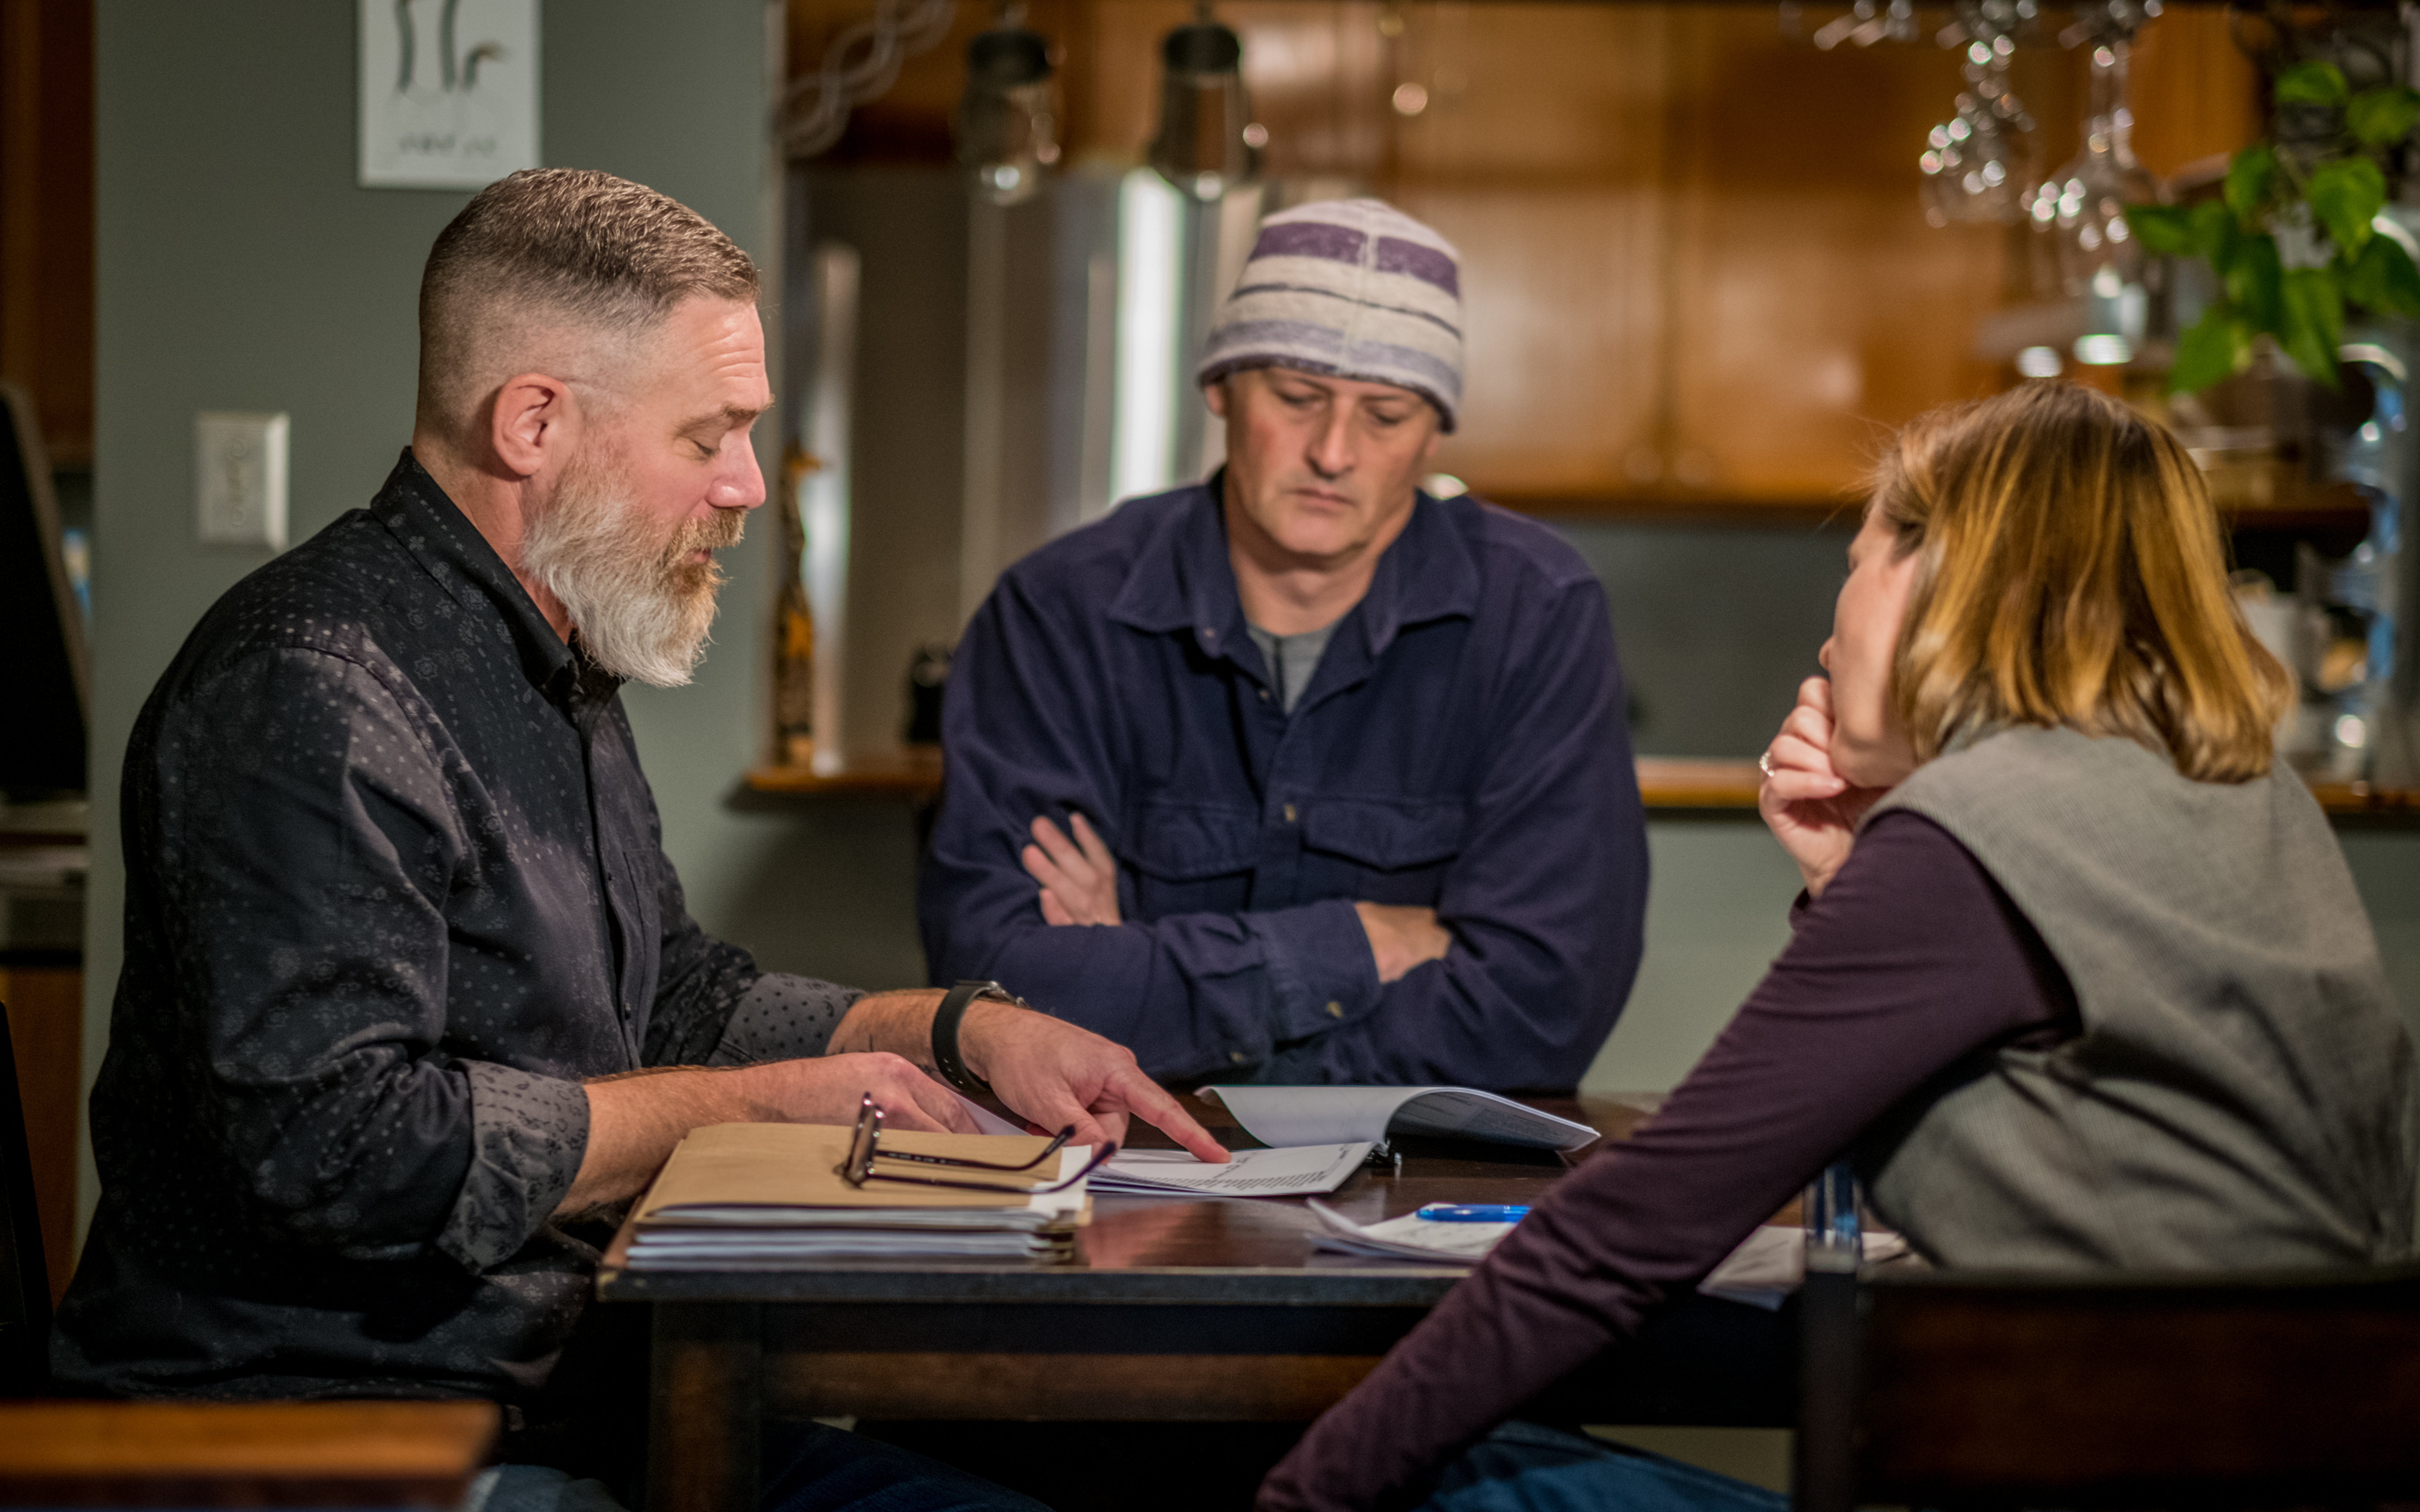 Podcast host Julie Ireton, right, sits down with Peter Hamer, left, and Marc Leach, centre. (Michel Aspirot/CBC)